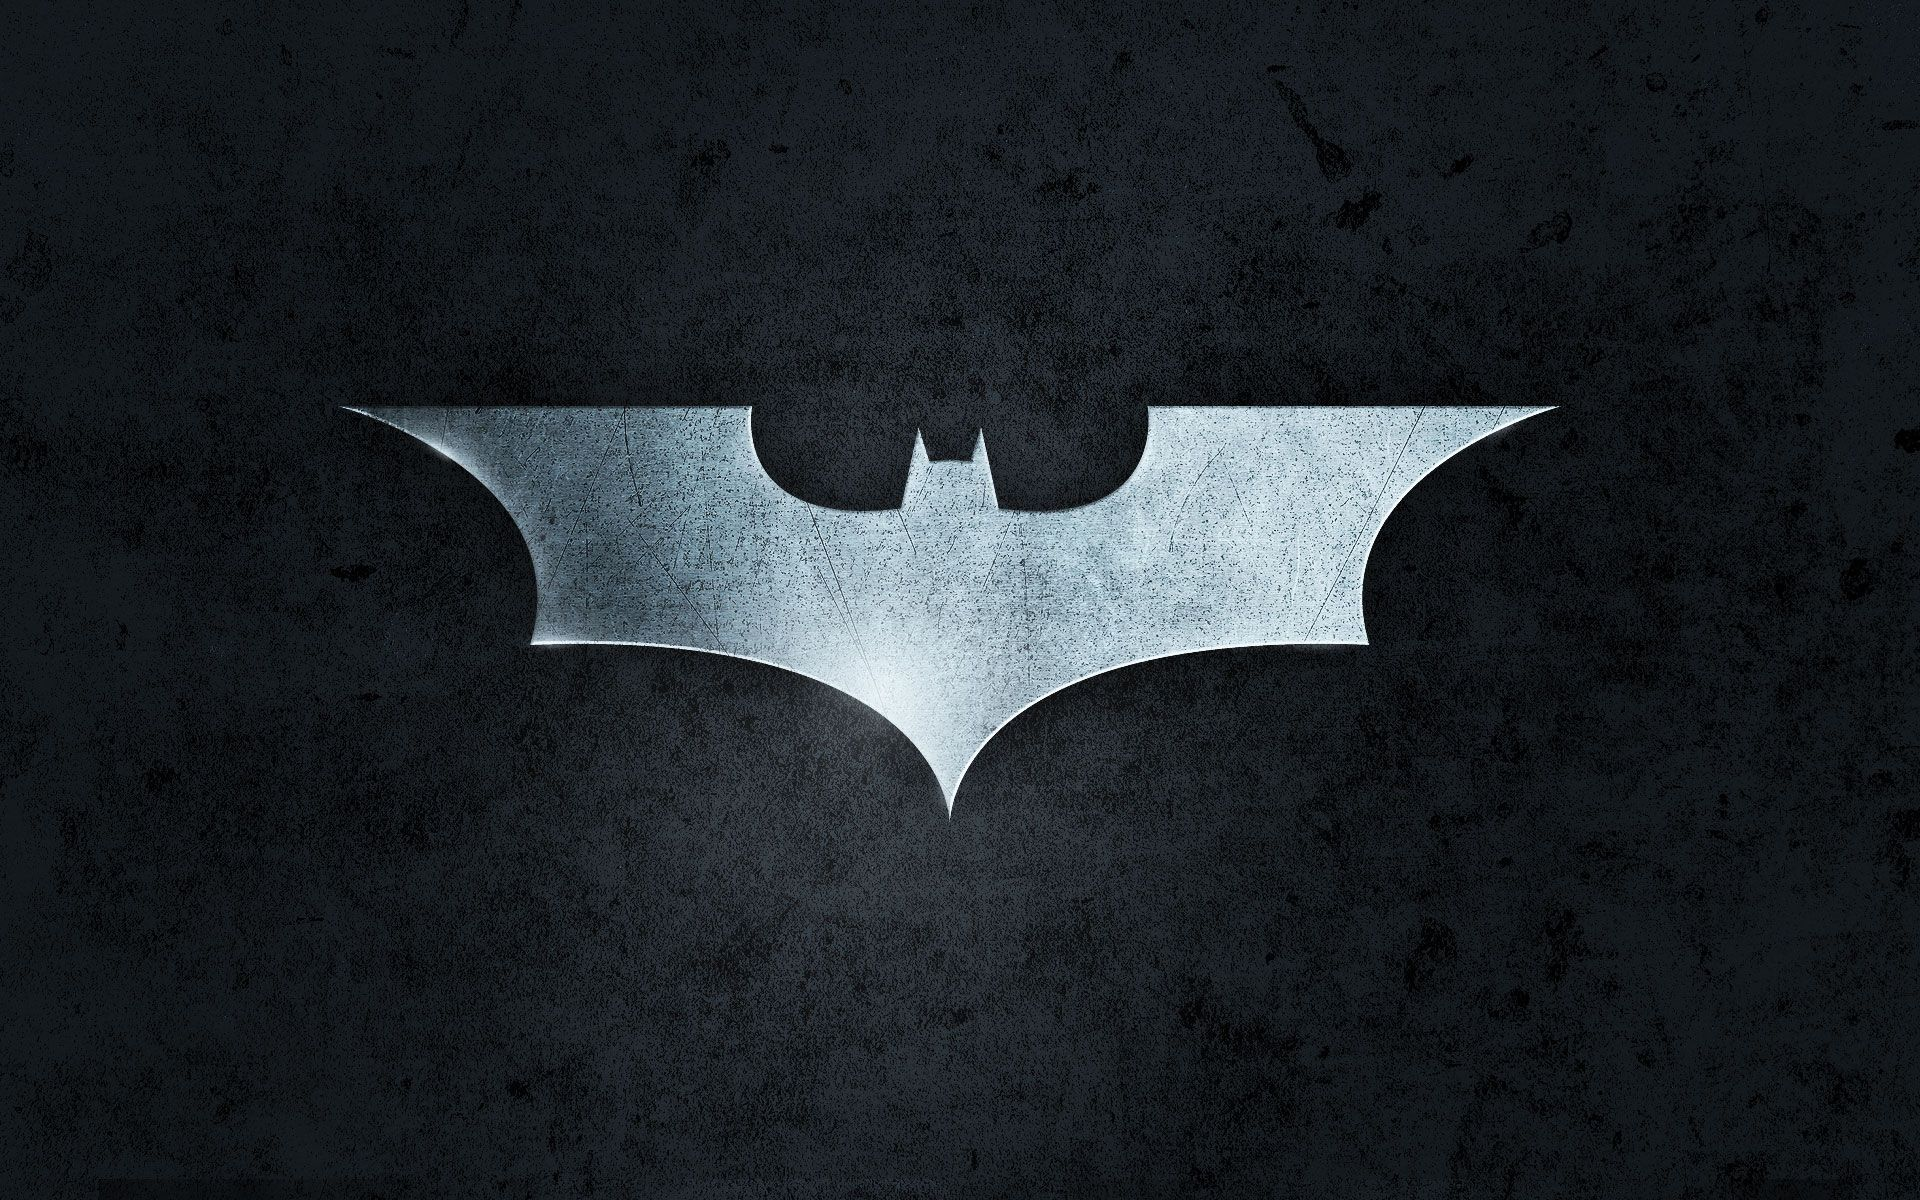 Batman Symbol Wallpapers Full Hd Wallpaper Search Batman